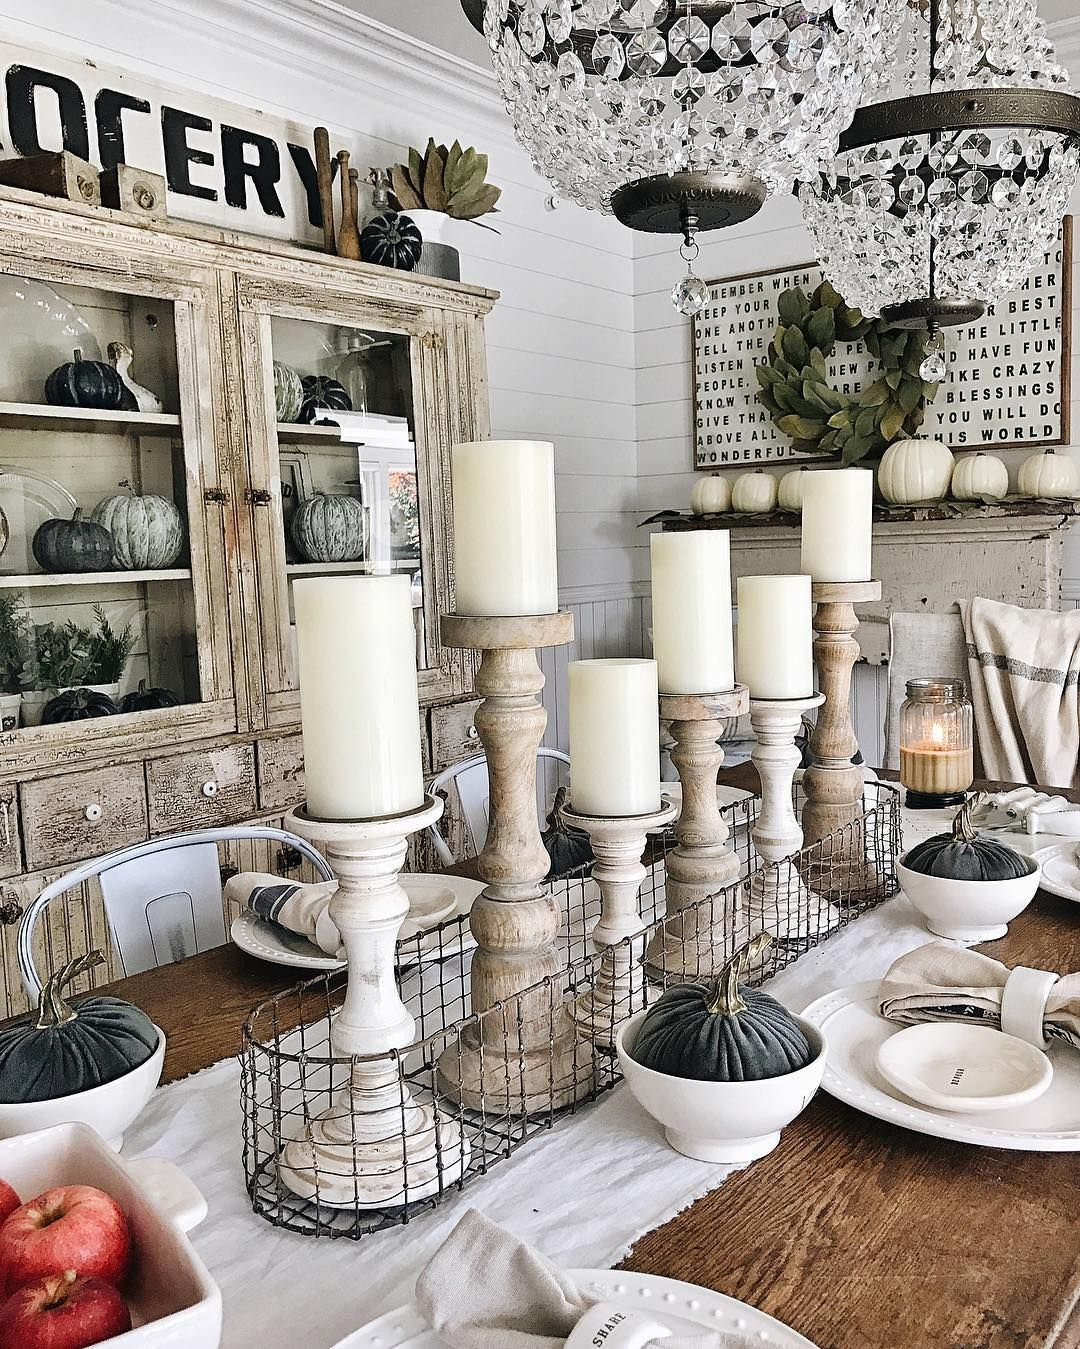 Thankful that the changing season has inspired me to decorate our home even though it's under construction. Our farmhouse is looking pretty cozy these days... at least little parts of it. I'll be blogging this simple fall tablescape this week with all the sources & details. Happy Sunday!❤️#whitecottagefarm [source of lights on the blog- link in my profile]